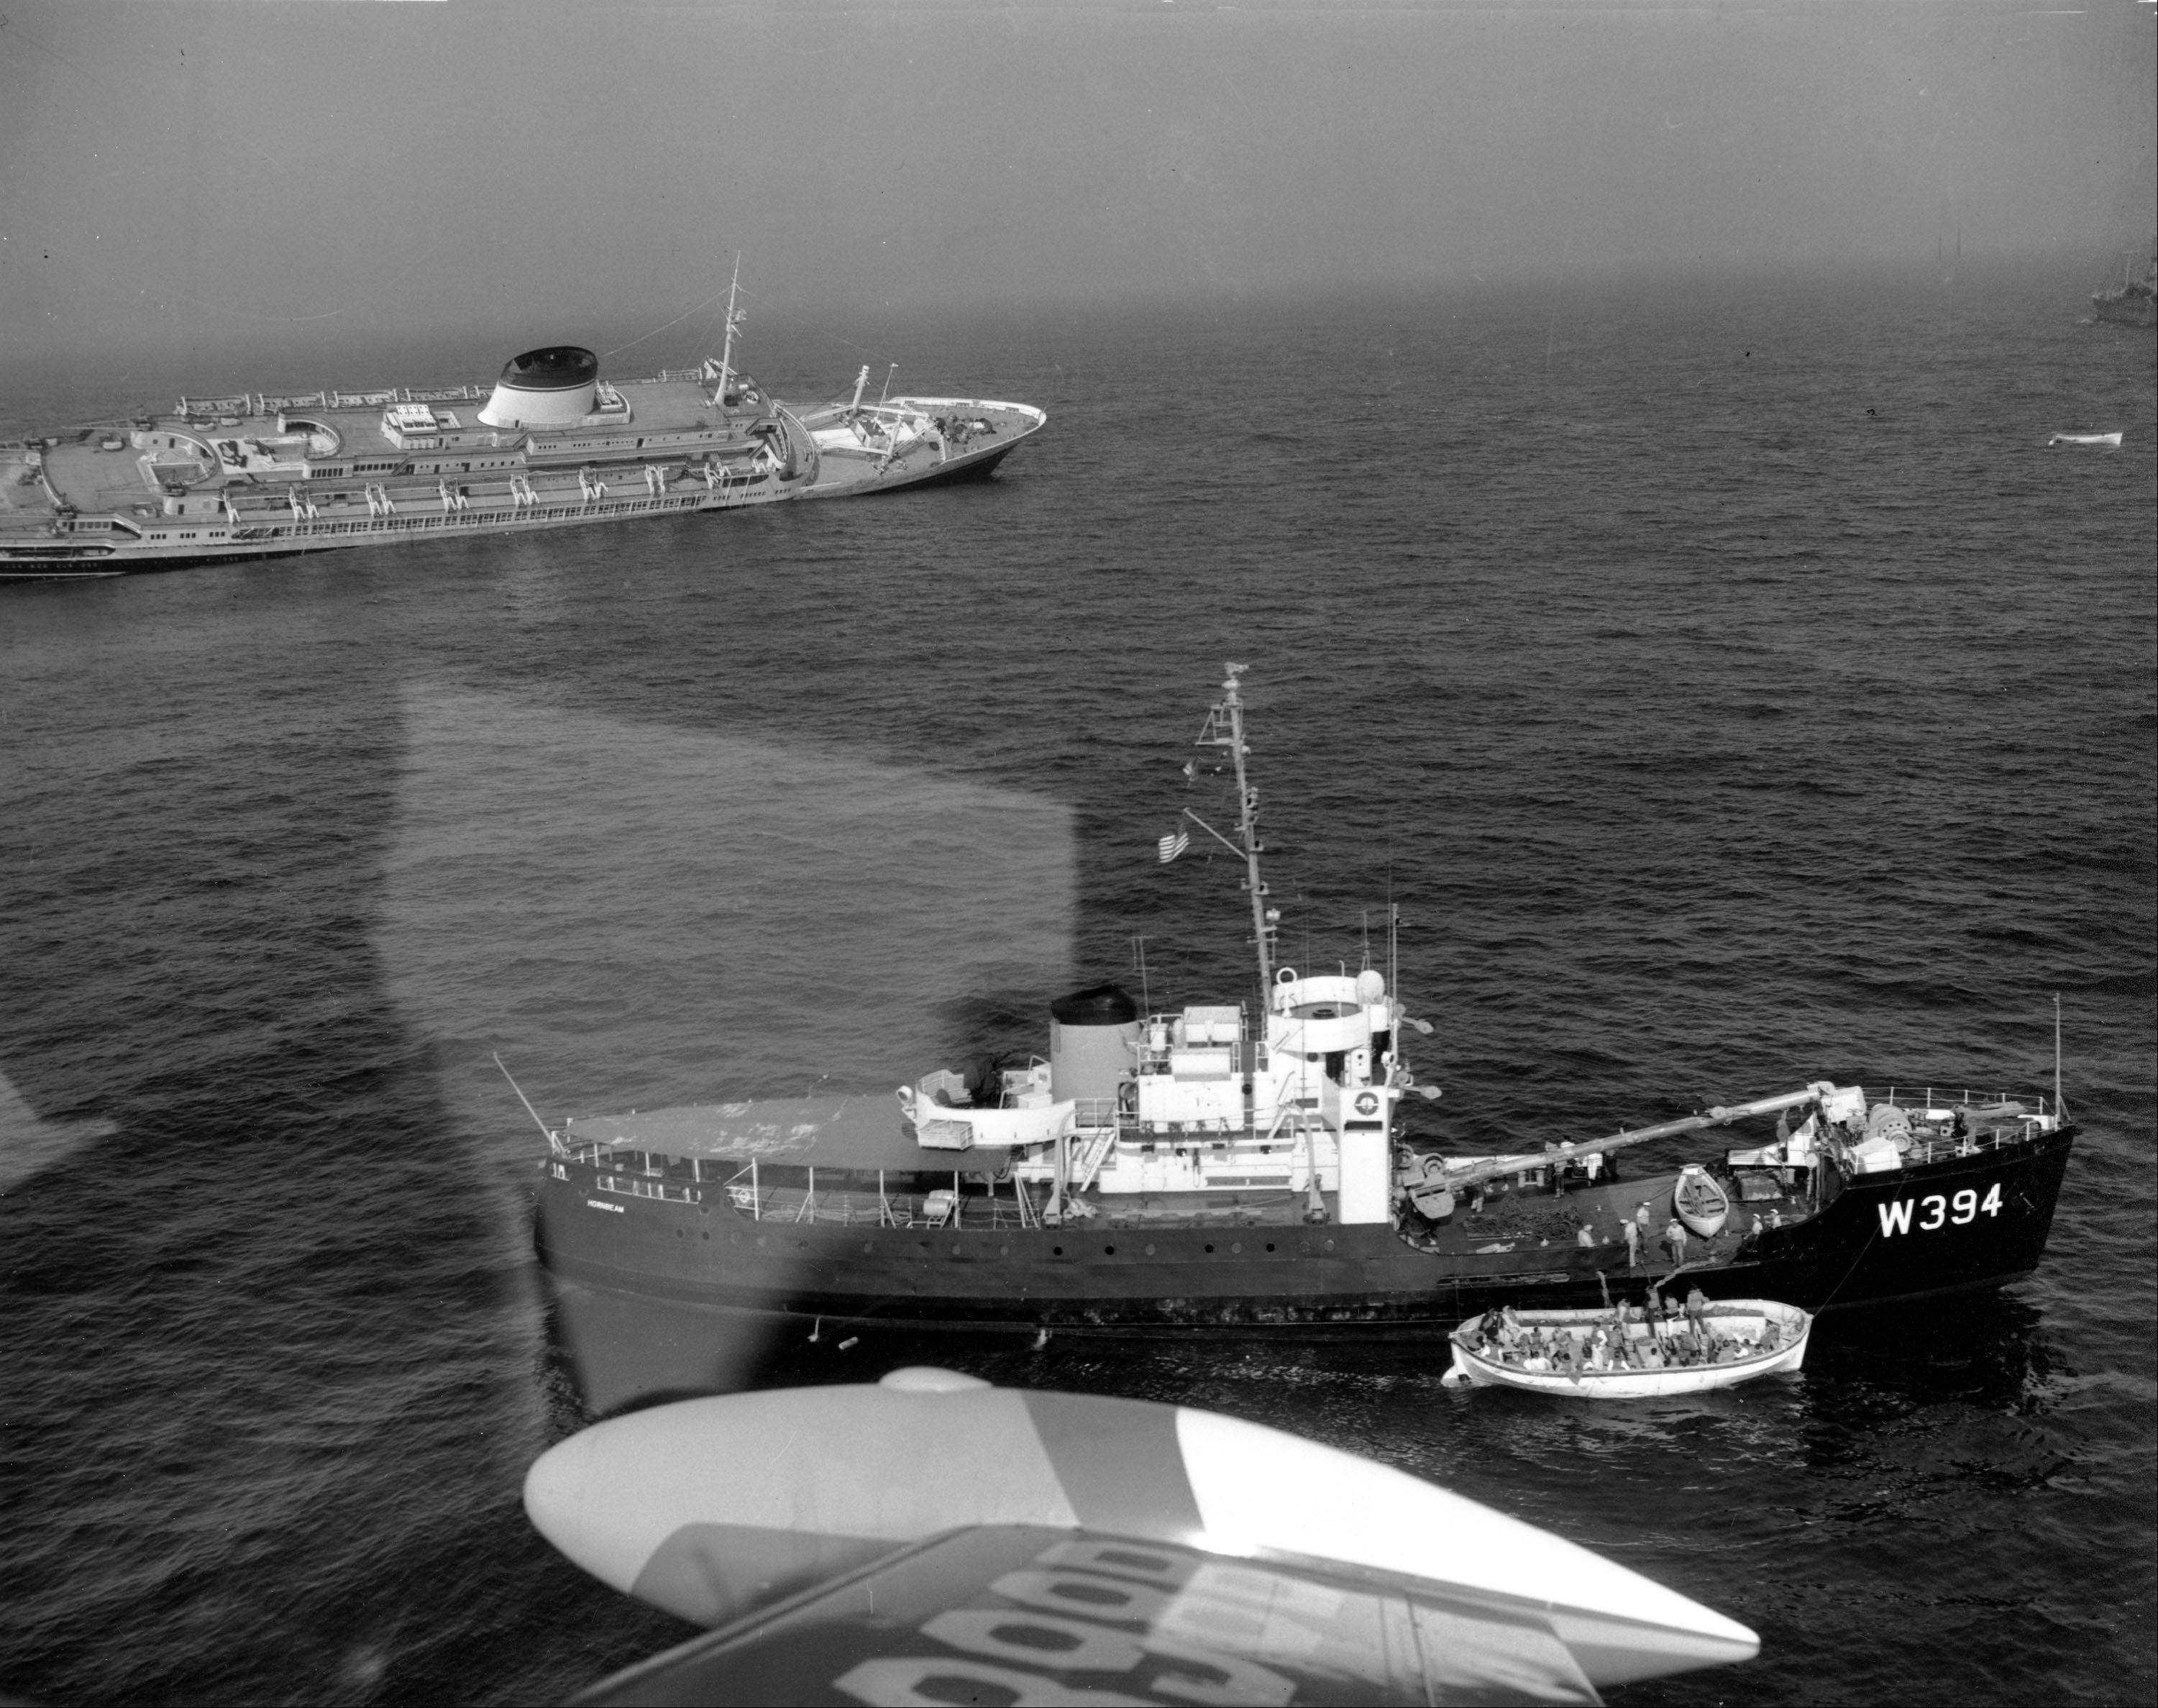 A lifeboat of passengers is alongside a rescue vessel as the liner Andrea Doria sinks in the background on July 26, 1956. The Italian liner collided with the Swedish liner Stockholm off Nantucket Island, Ma., last night. The reflection in center is halation from the plane window through which this photograph was taken.